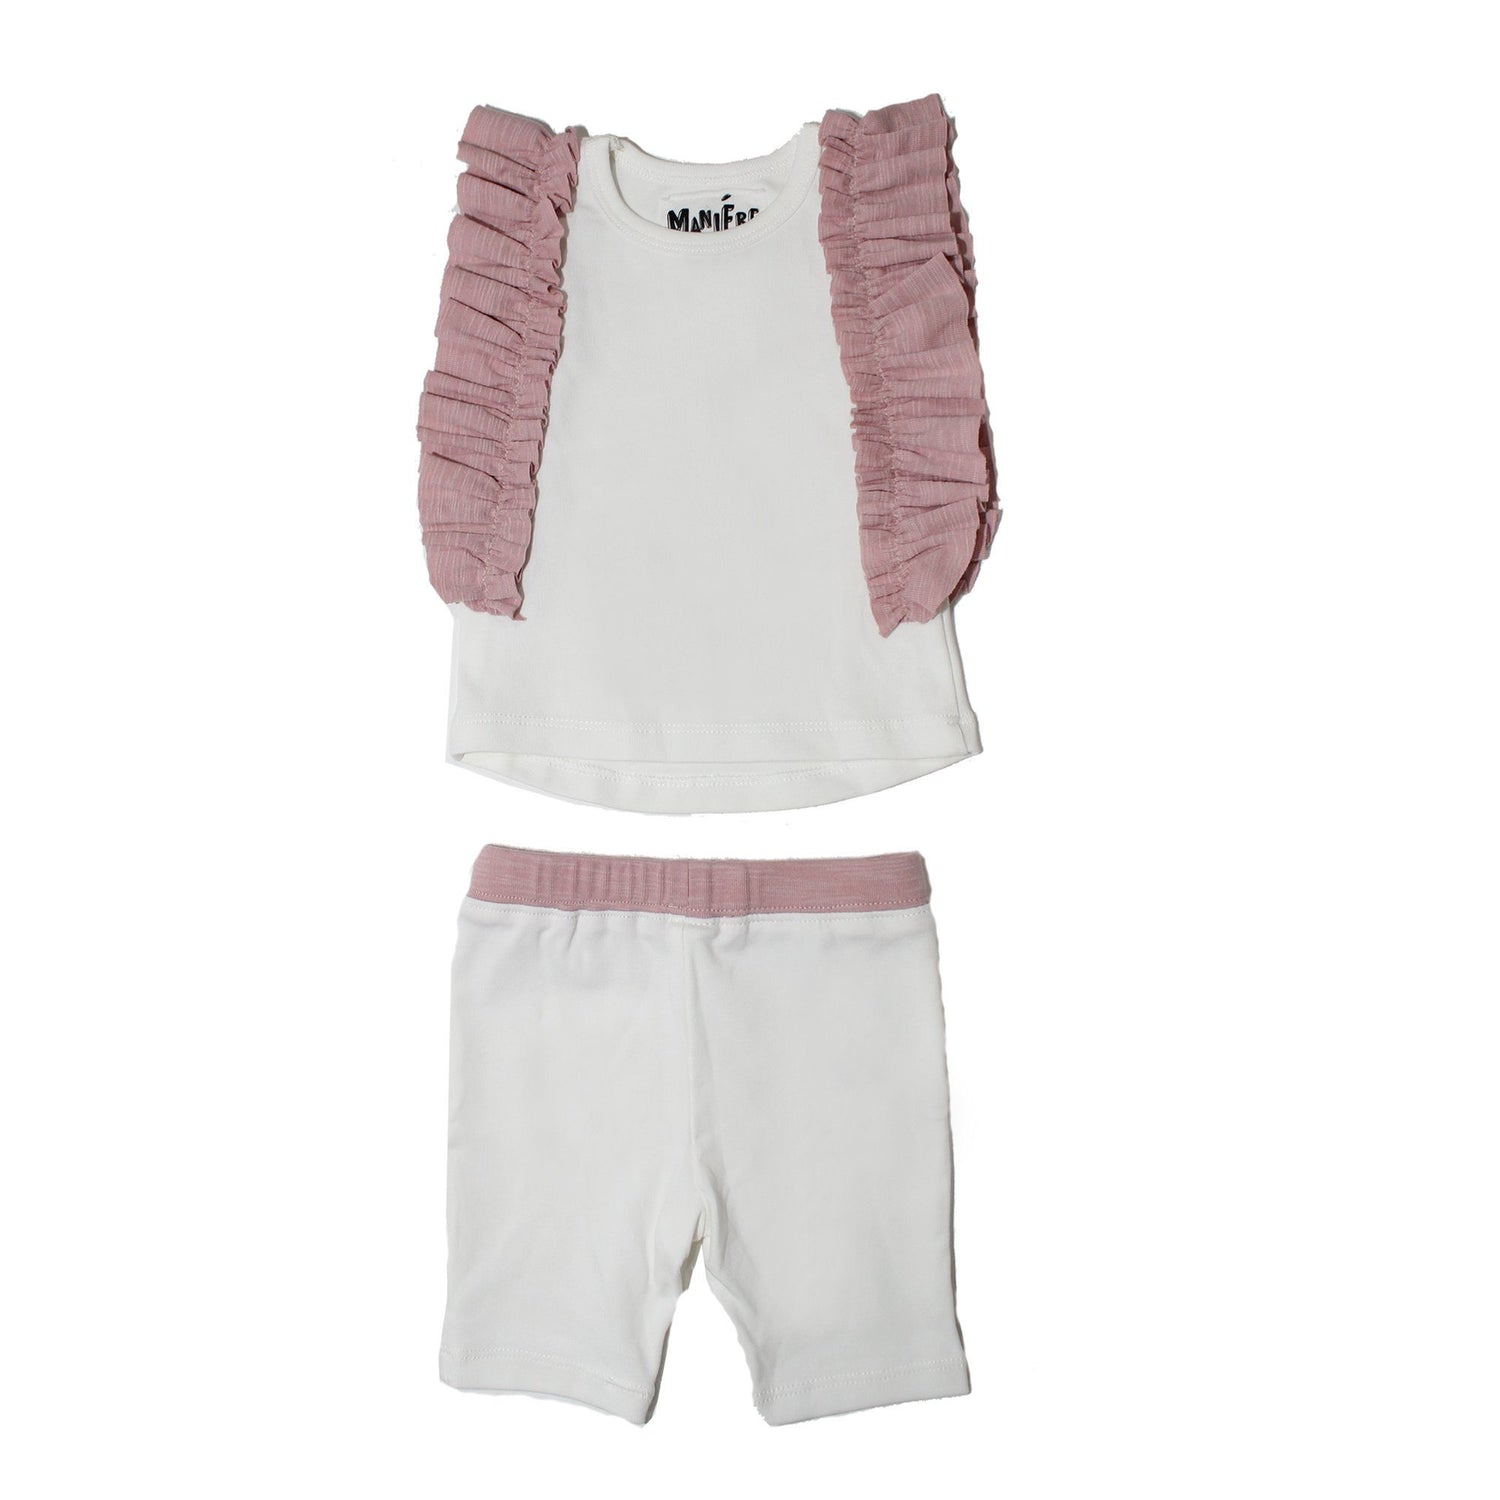 Ruffle Sleeve Set Baby Sets Maniere Accessories Ivory/Pink 3M